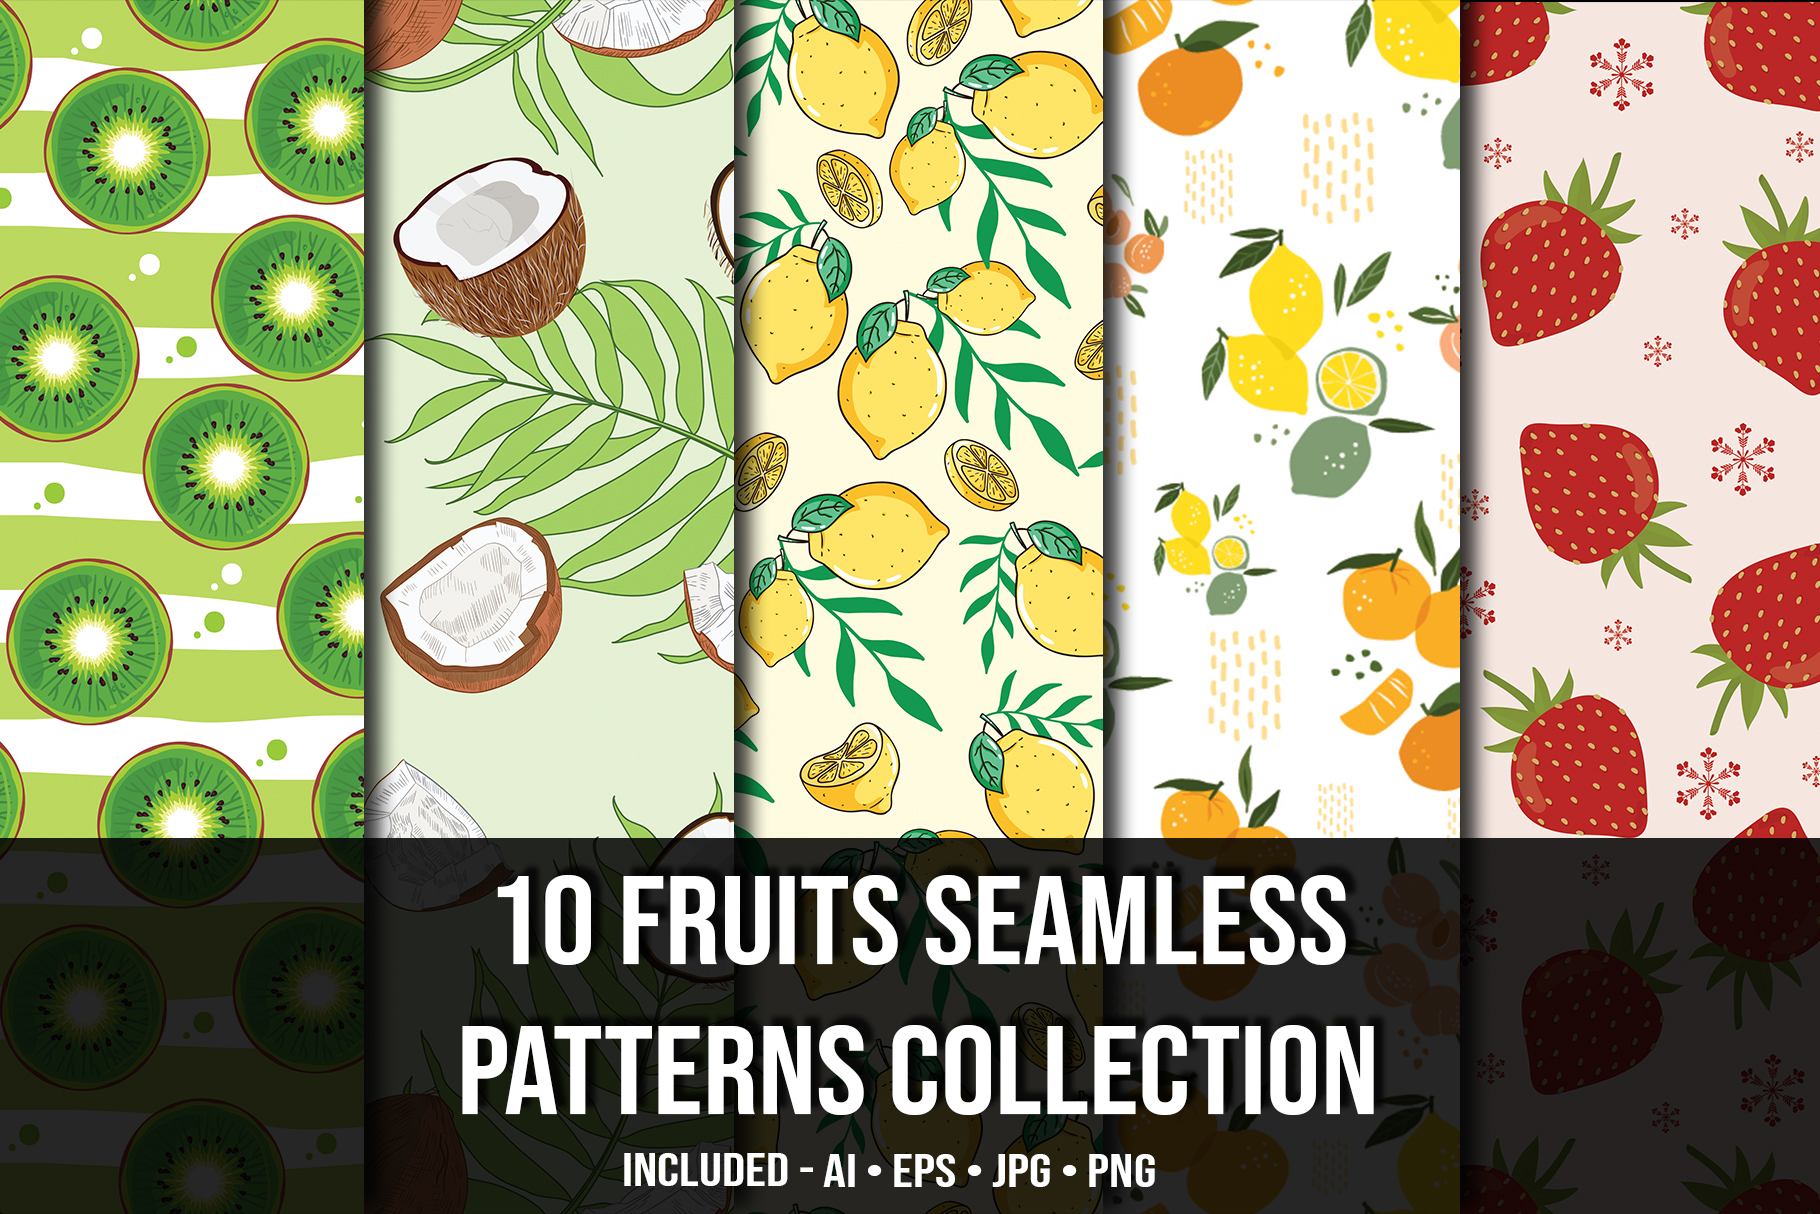 Fruits seamless collection.